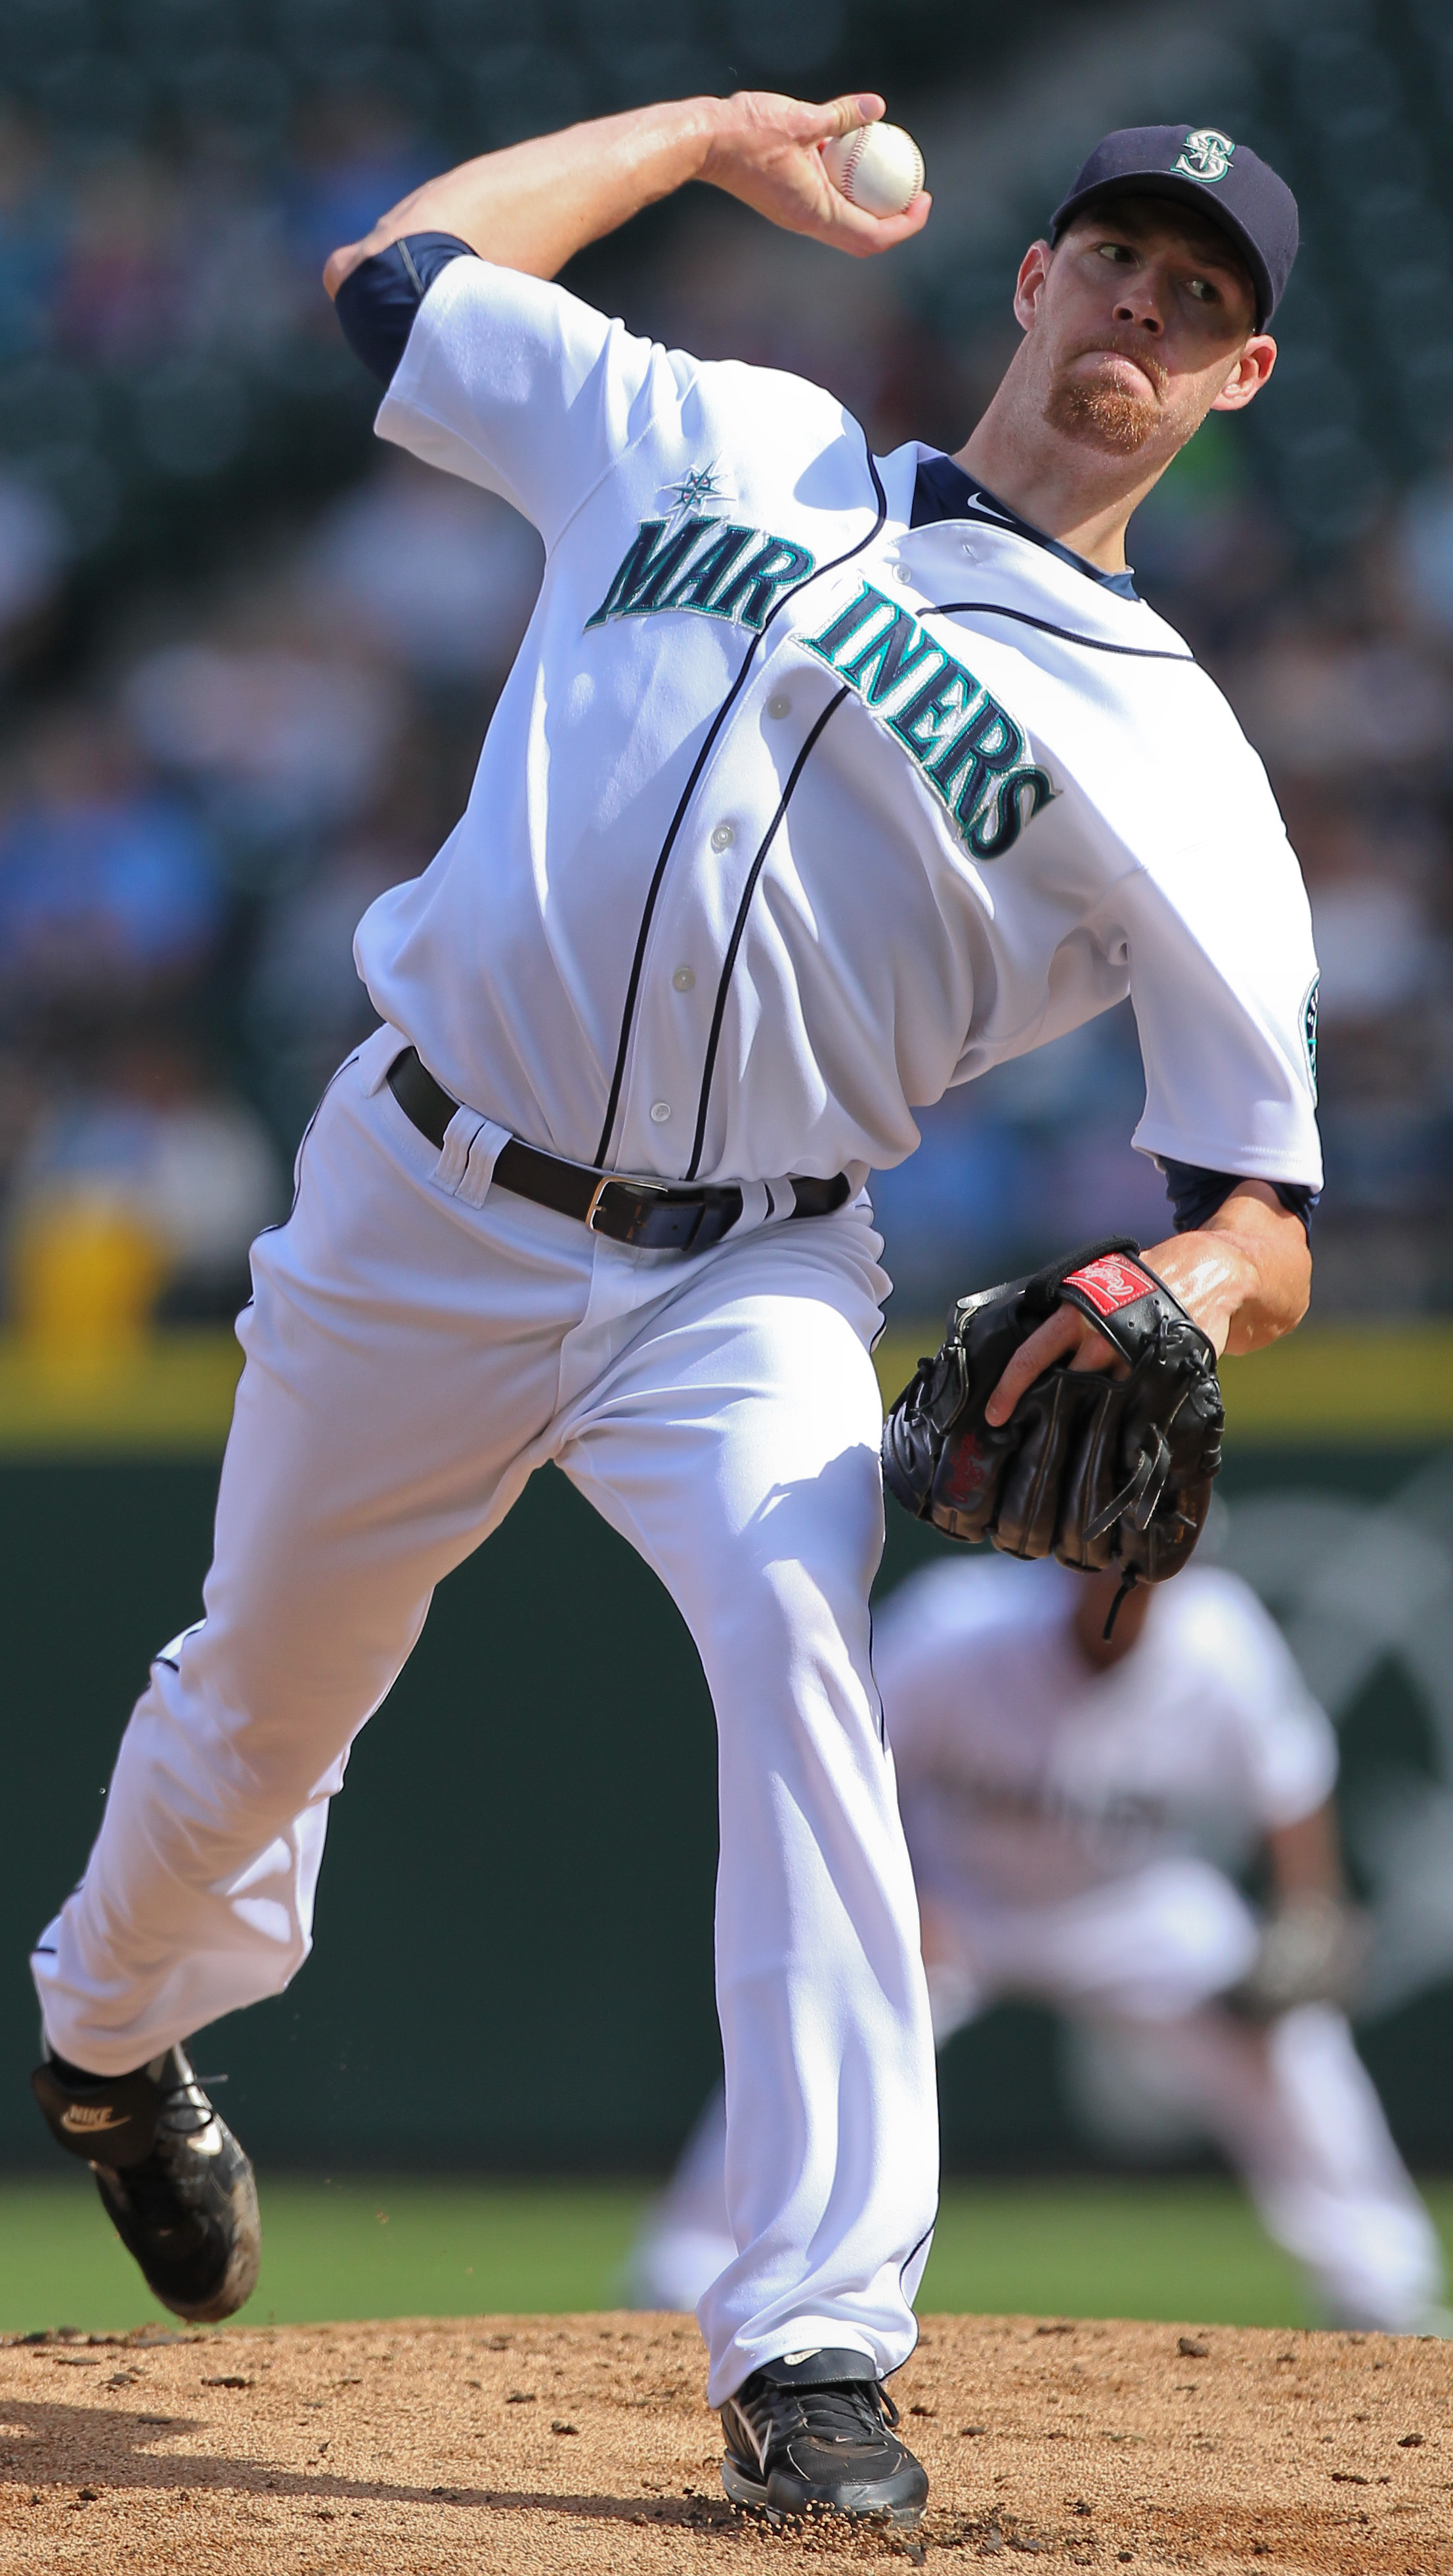 SEATTLE - SEPTEMBER 19:  Starting pitcher Doug Fister #58 of the Seattle Mariners pitches against the Texas Rangers at Safeco Field on September 19, 2010 in Seattle, Washington. The Mariners won 2-1. (Photo by Otto Greule Jr/Getty Images)